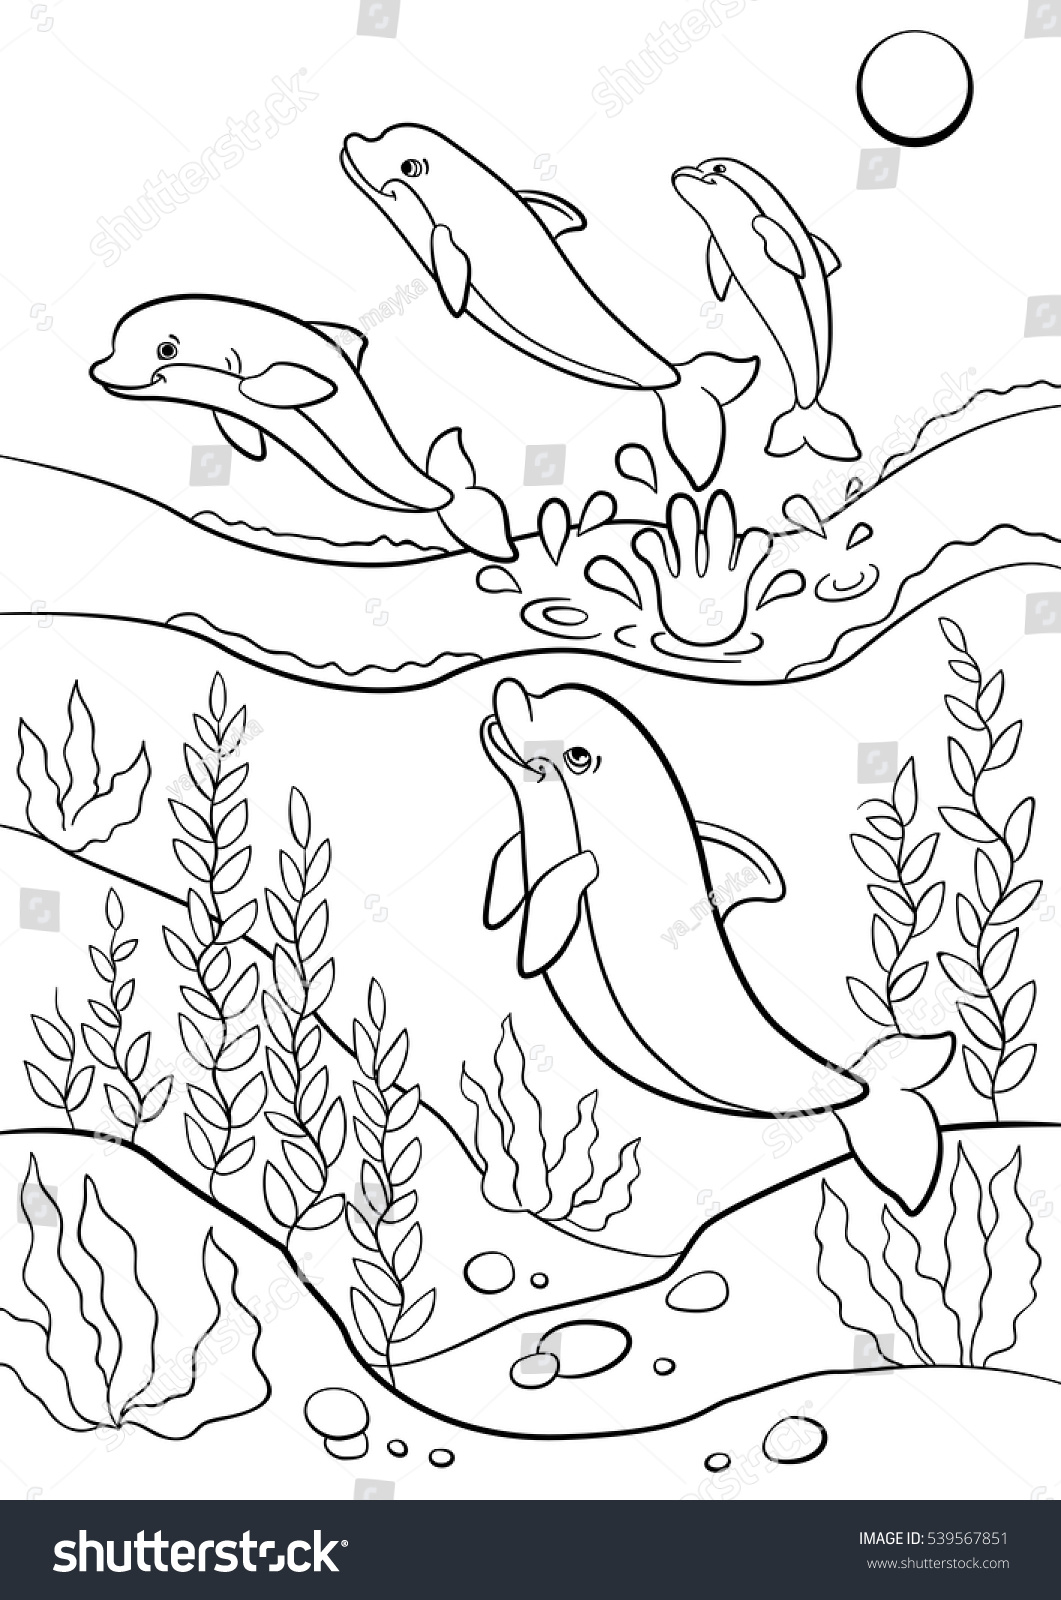 Coloring Pages Marine Wild Animals Cute Stock Vector 539567851 ...